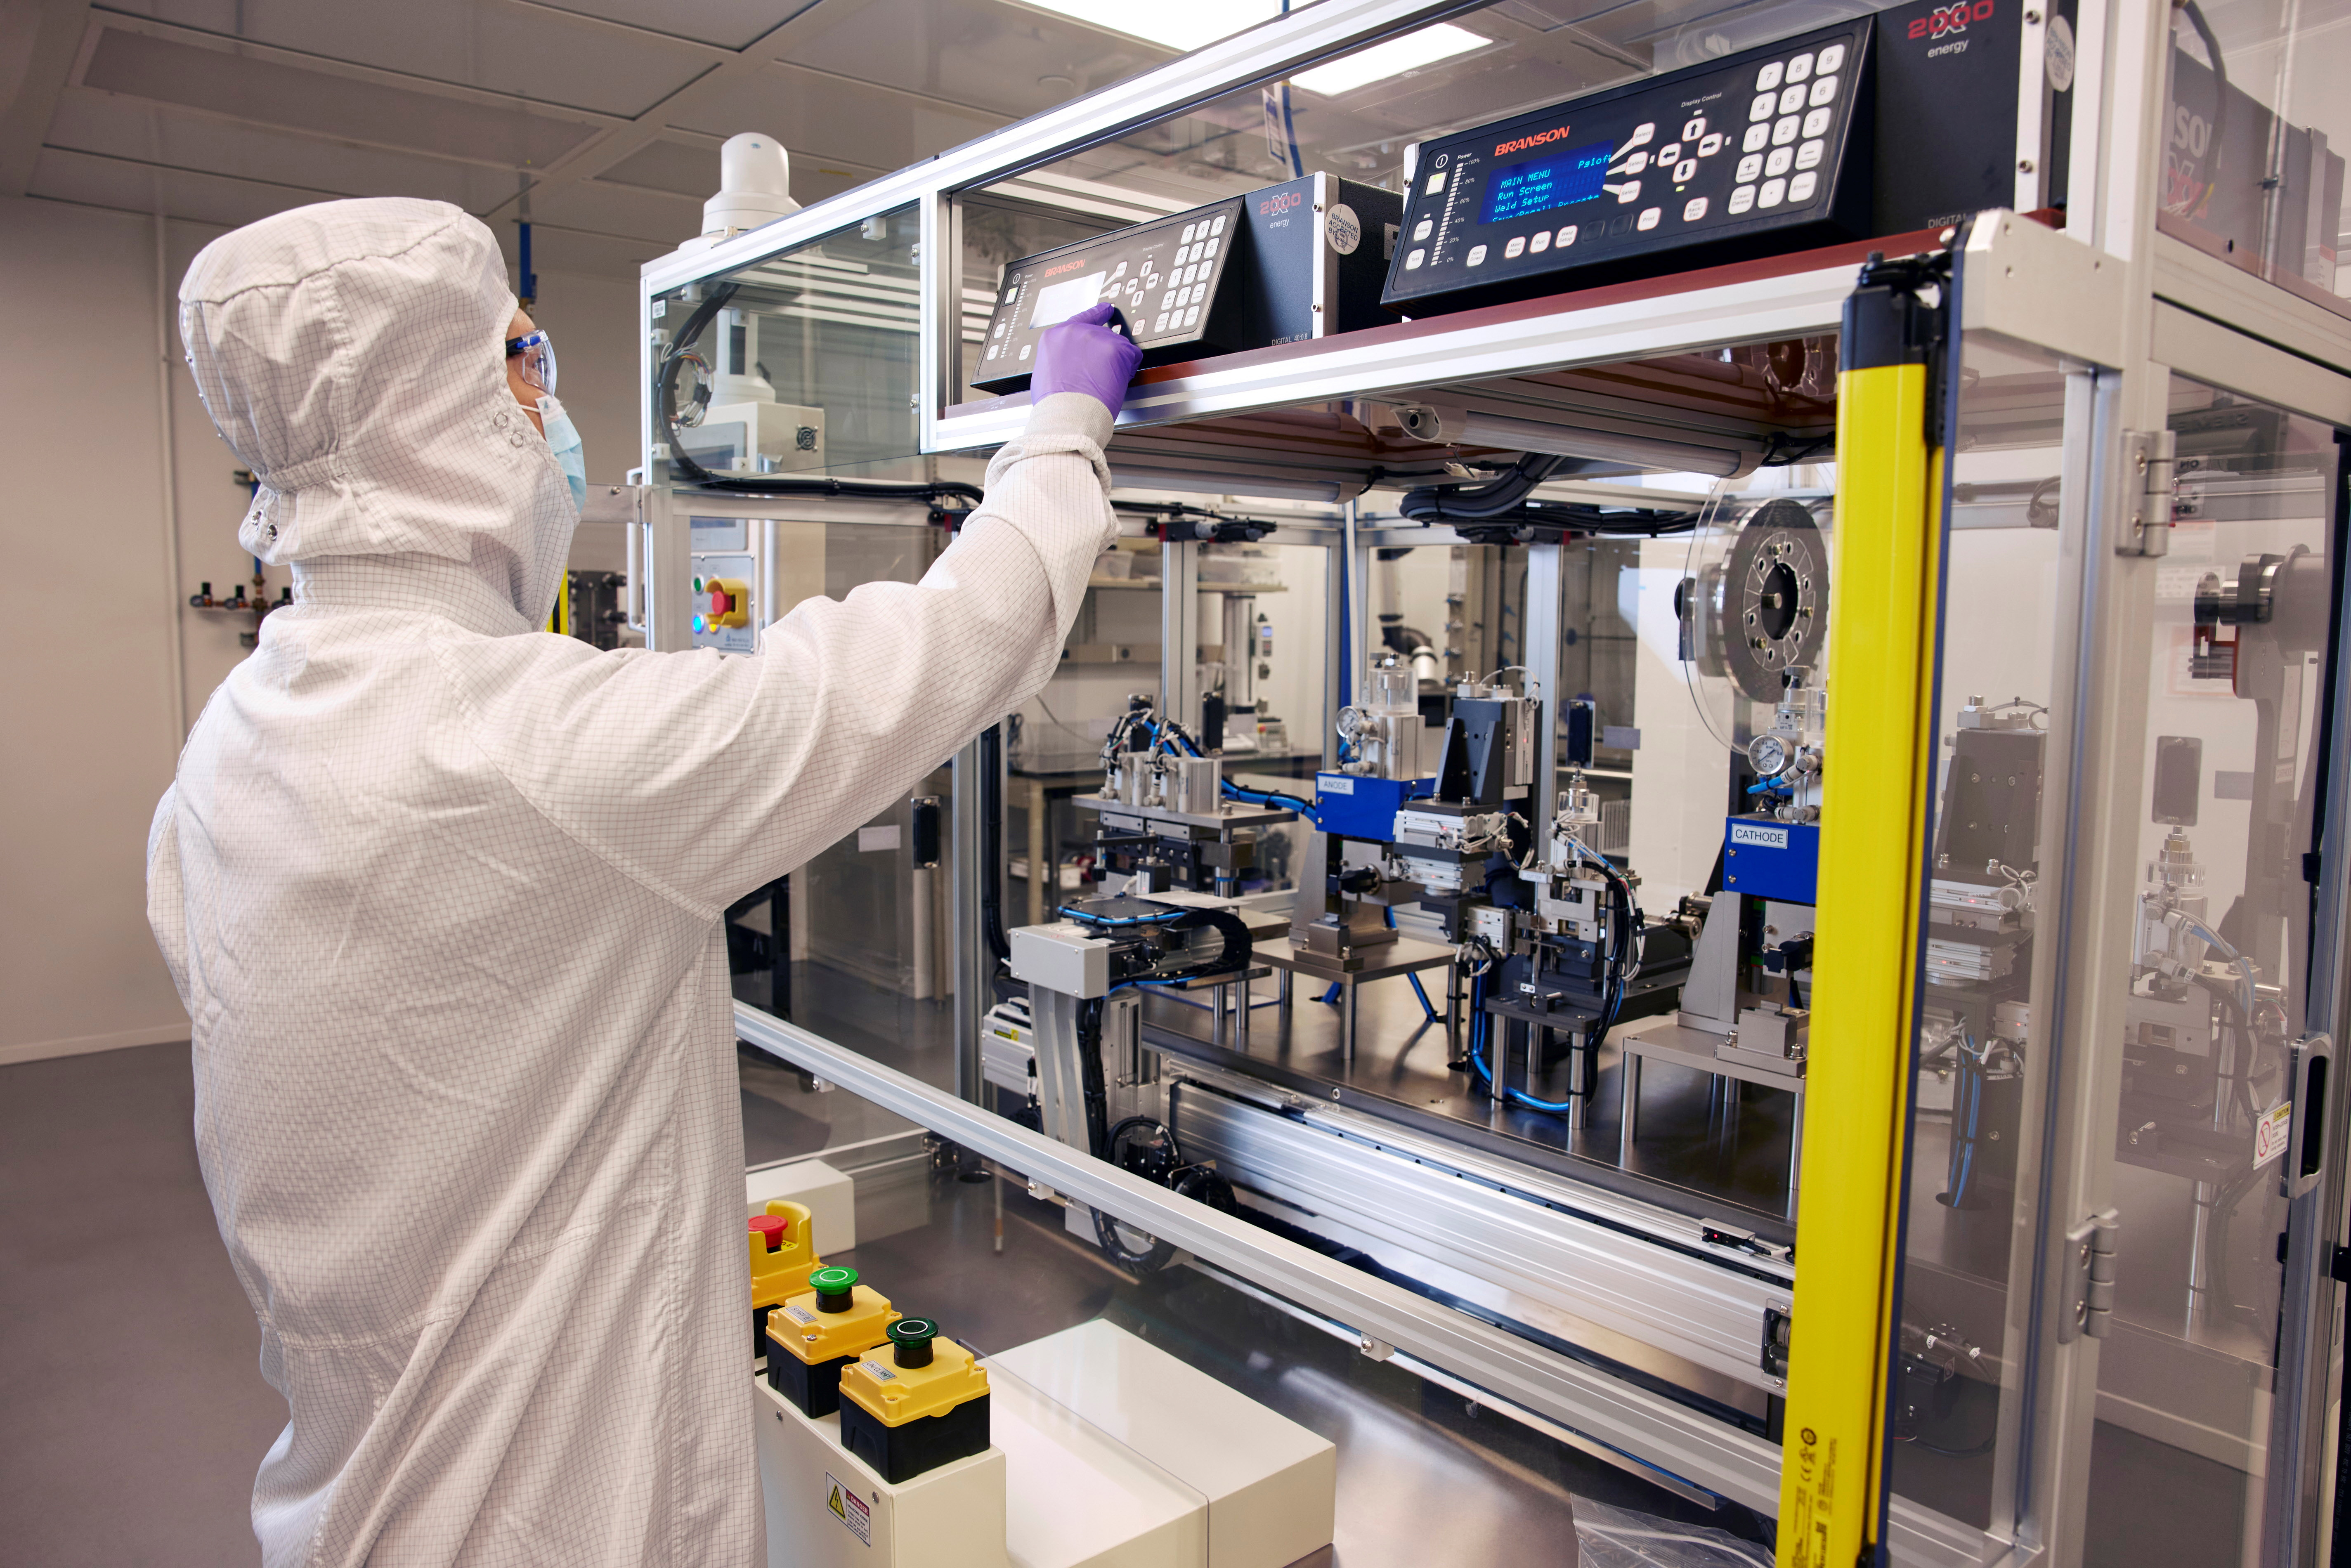 A GM Research and Development electrochemist forms a prototype battery cell in the fabrication lab within GM's Global Technical Center in Warren, Michigan, U.S., in an undated photograph. General Motors/Handout via REUTERS